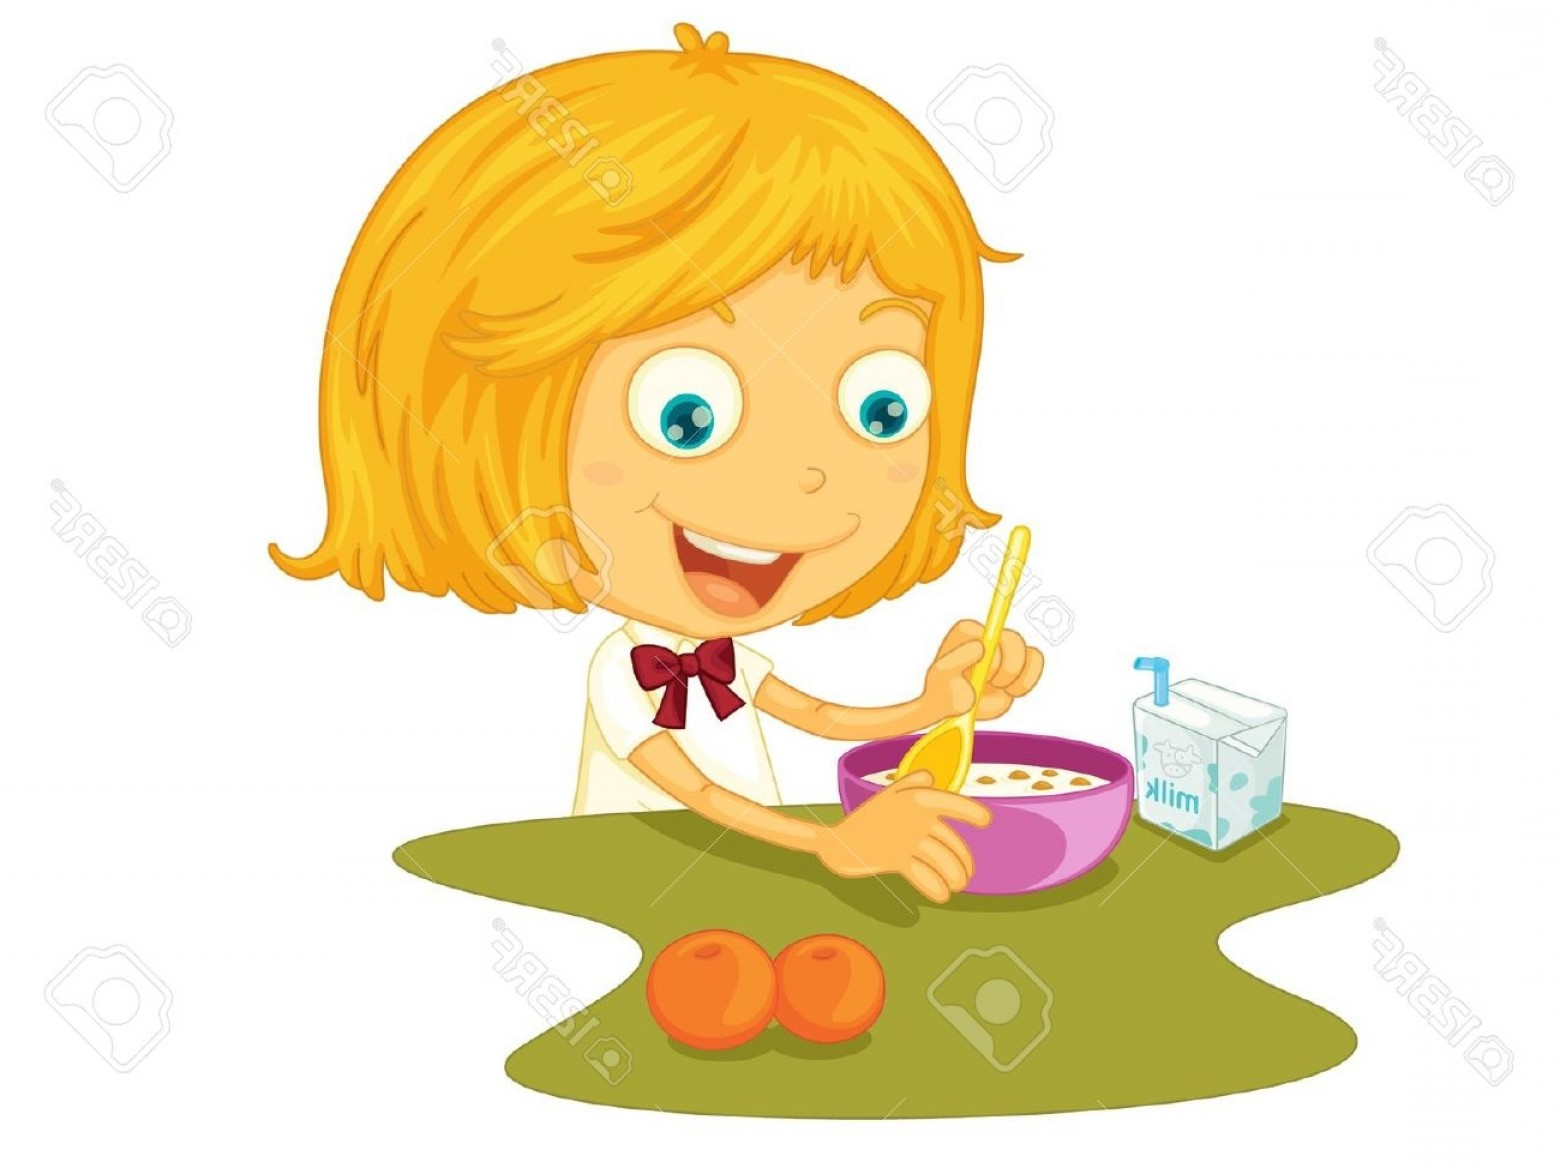 Breakfast clipart kid breakfast Clip 4780 Breakfast Clipart Images